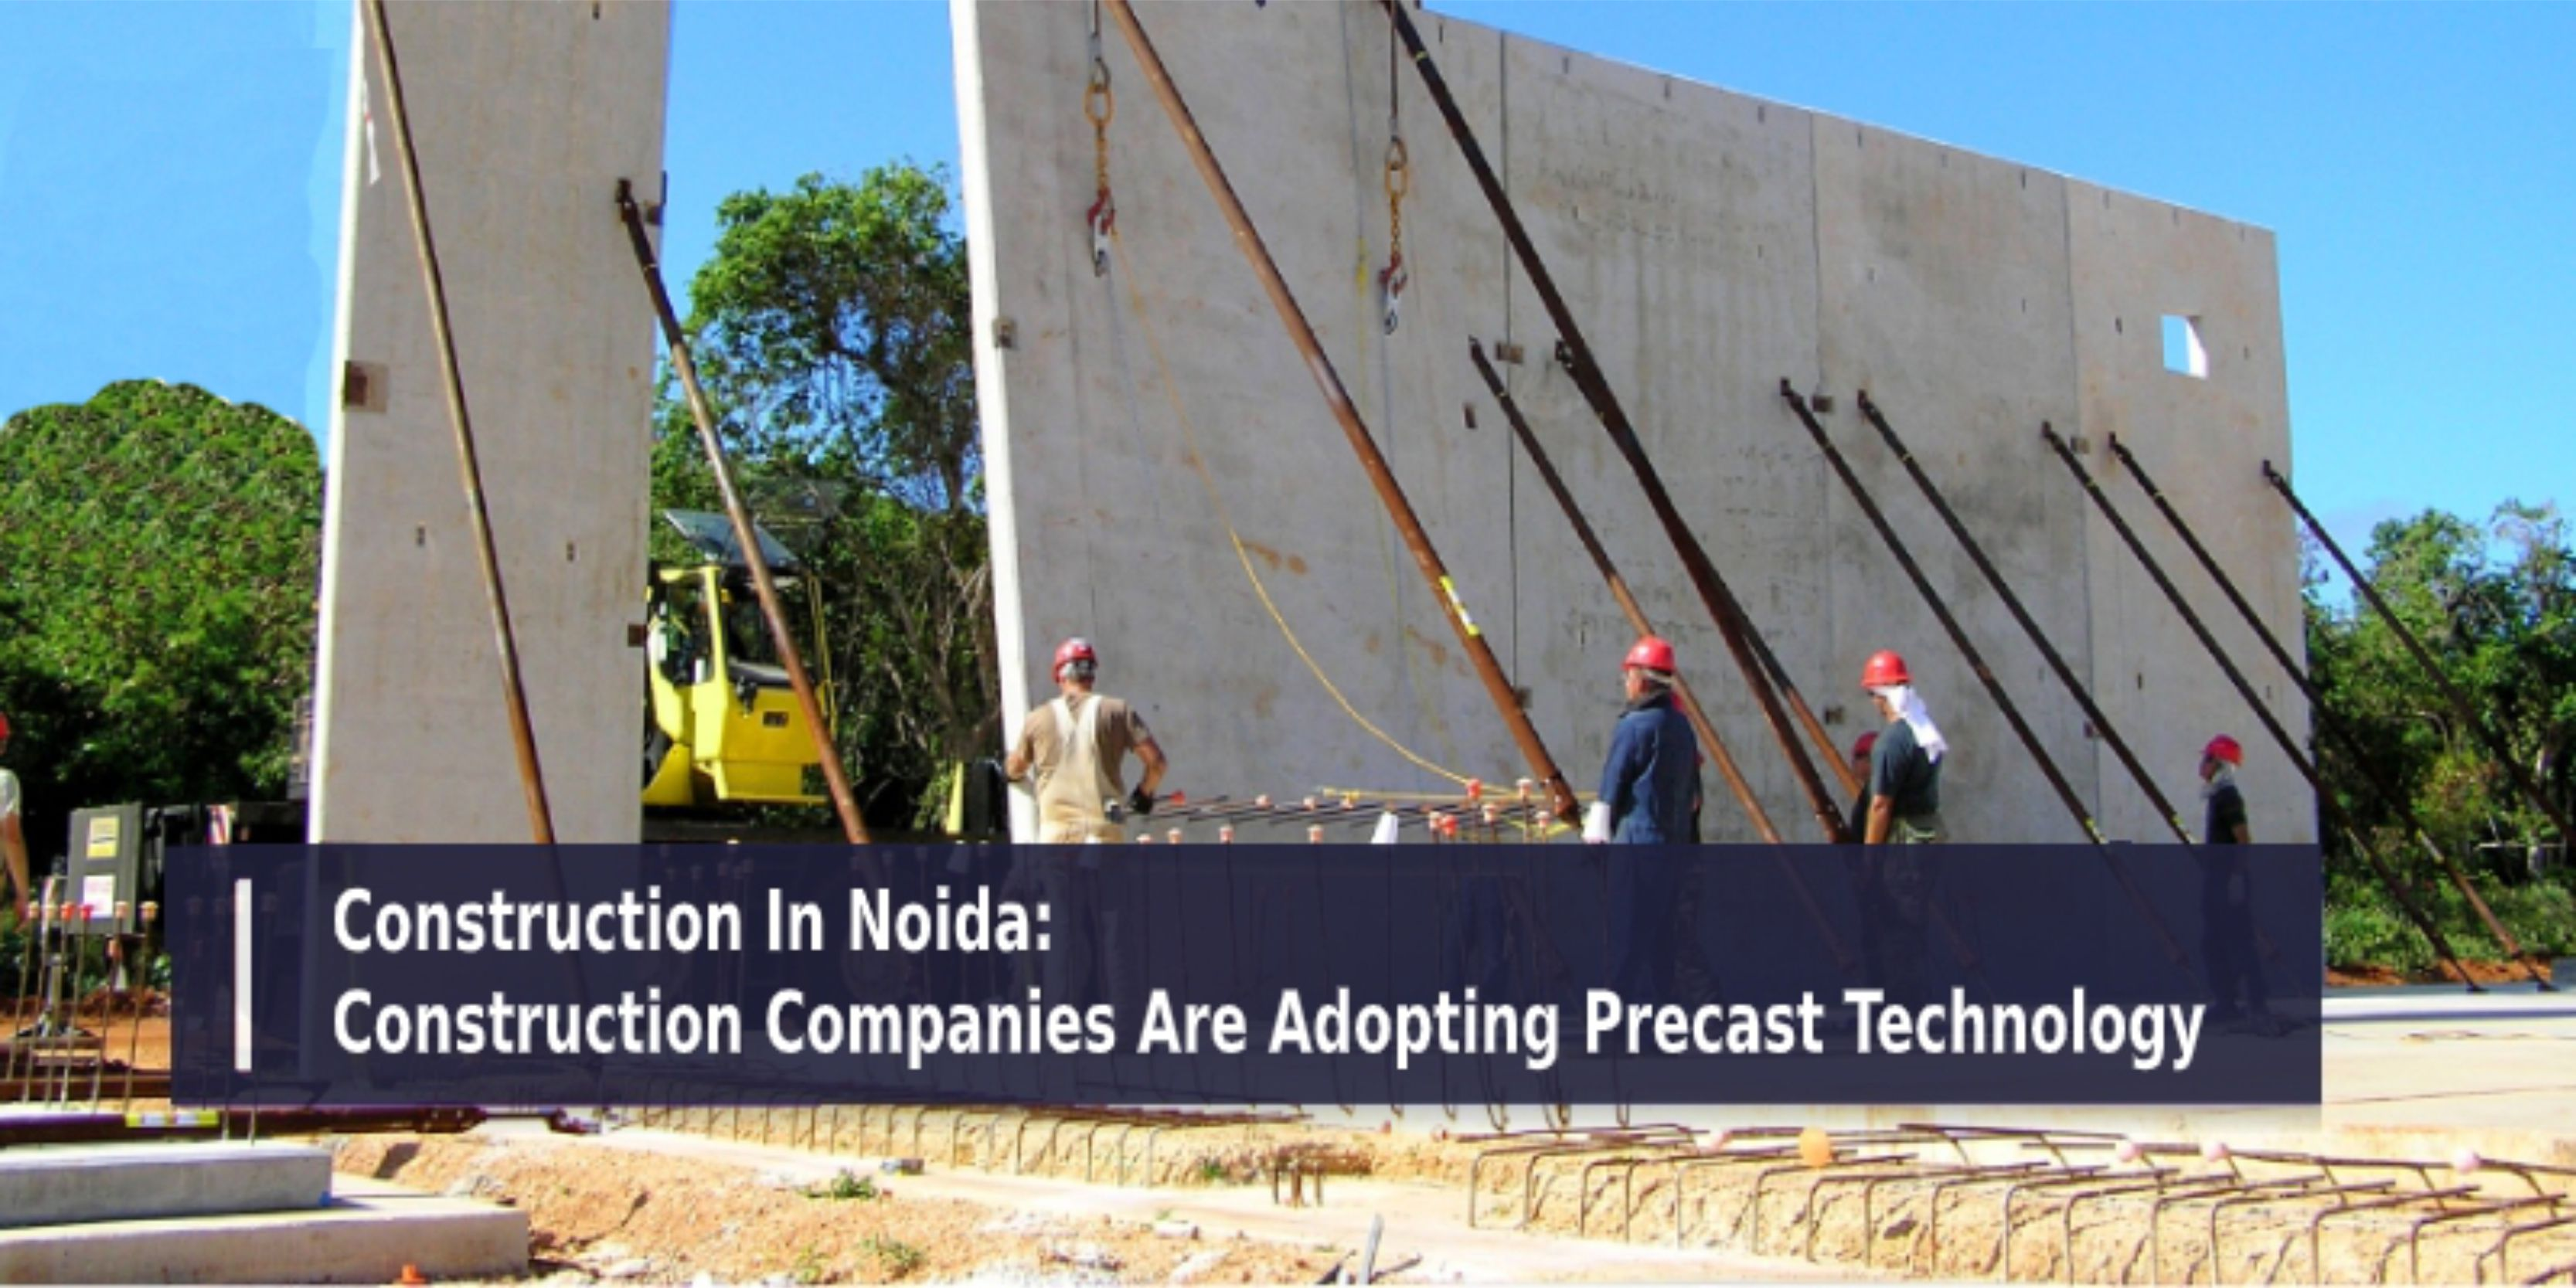 Construction In Noida: Construction Companies Are Adopting Precast Technology